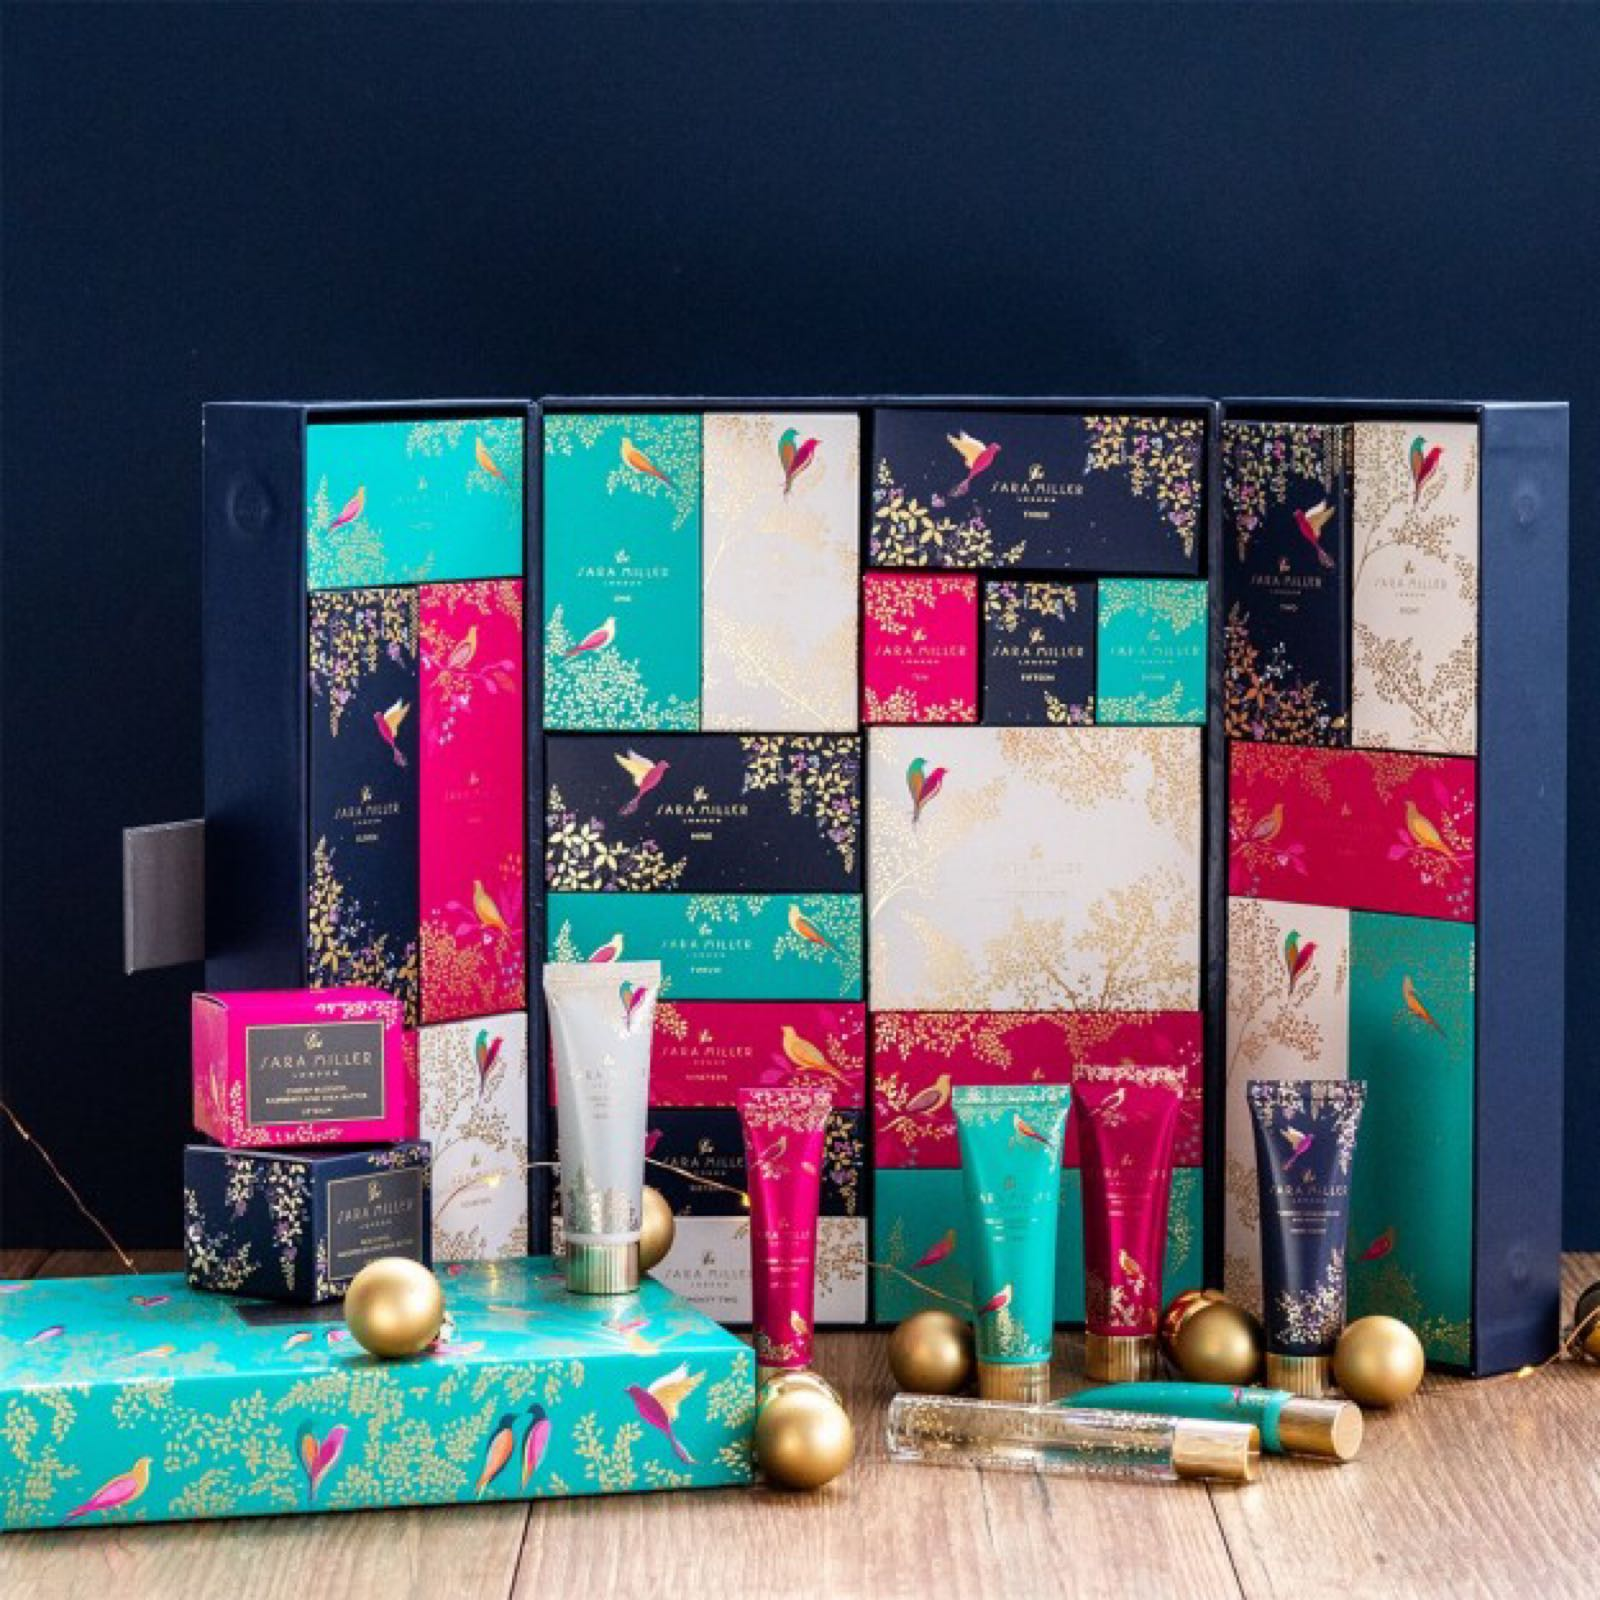 Sara Miller London Advent Calendar 25 products worth over £175 was £95